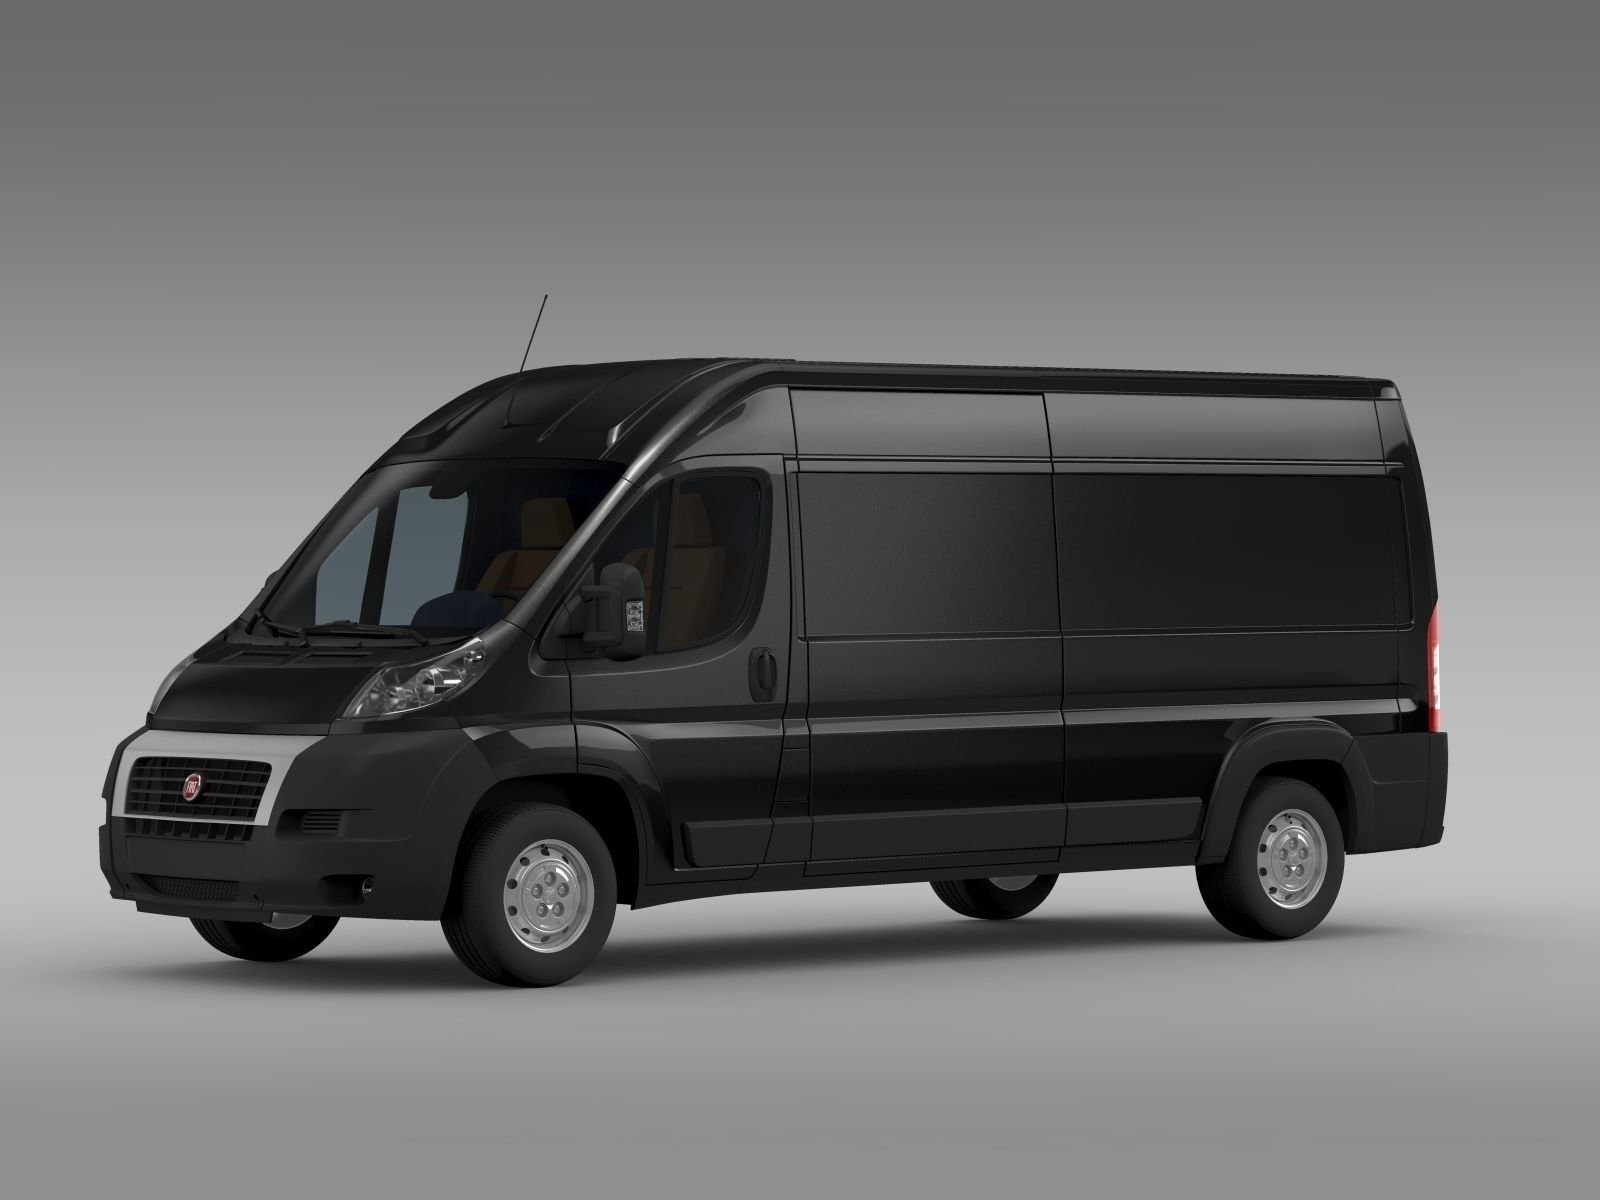 fiat ducato maxi van l3h2 2006 2014 3d model max obj 3ds fbx c4d lwo lw lws. Black Bedroom Furniture Sets. Home Design Ideas